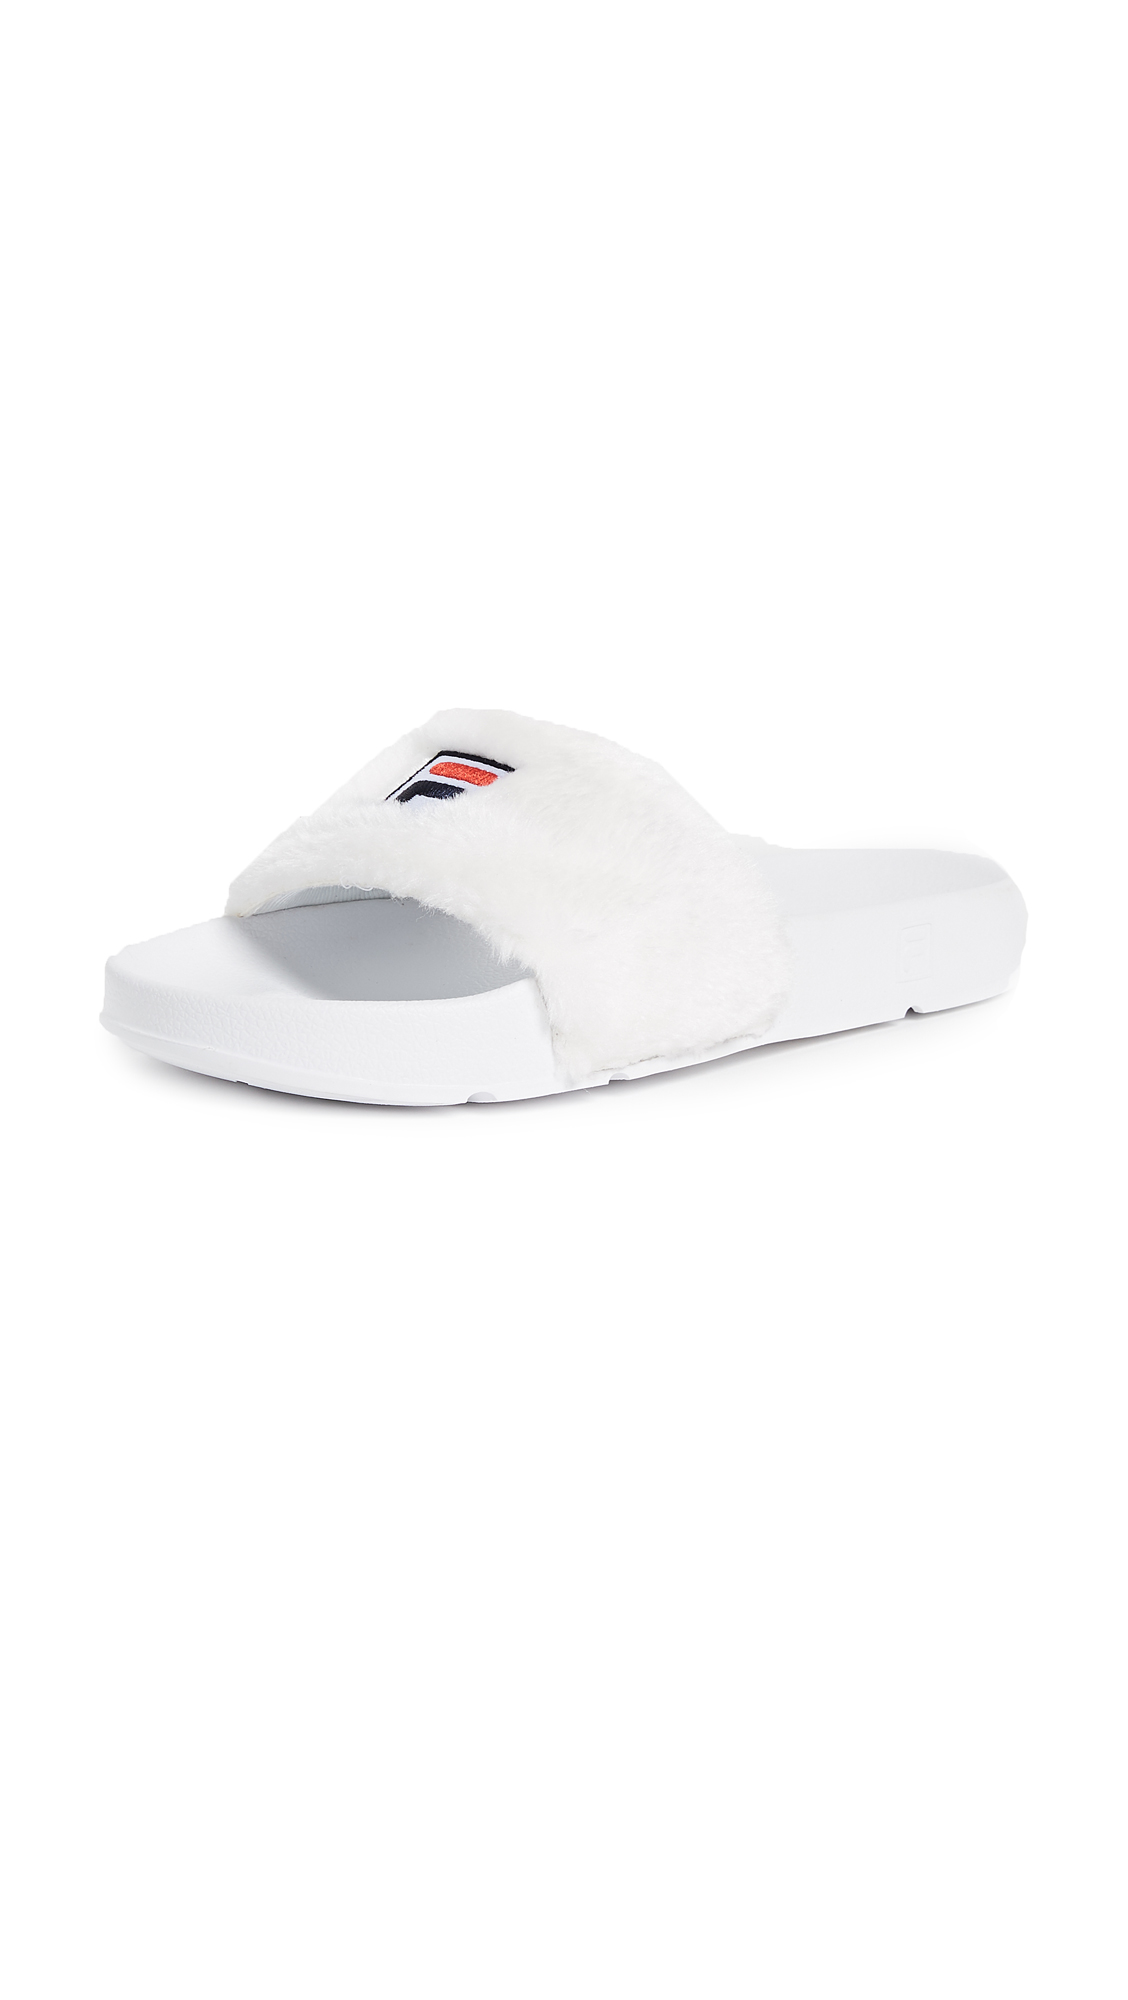 Baja East x FILA Sherpa Pool Slides - White